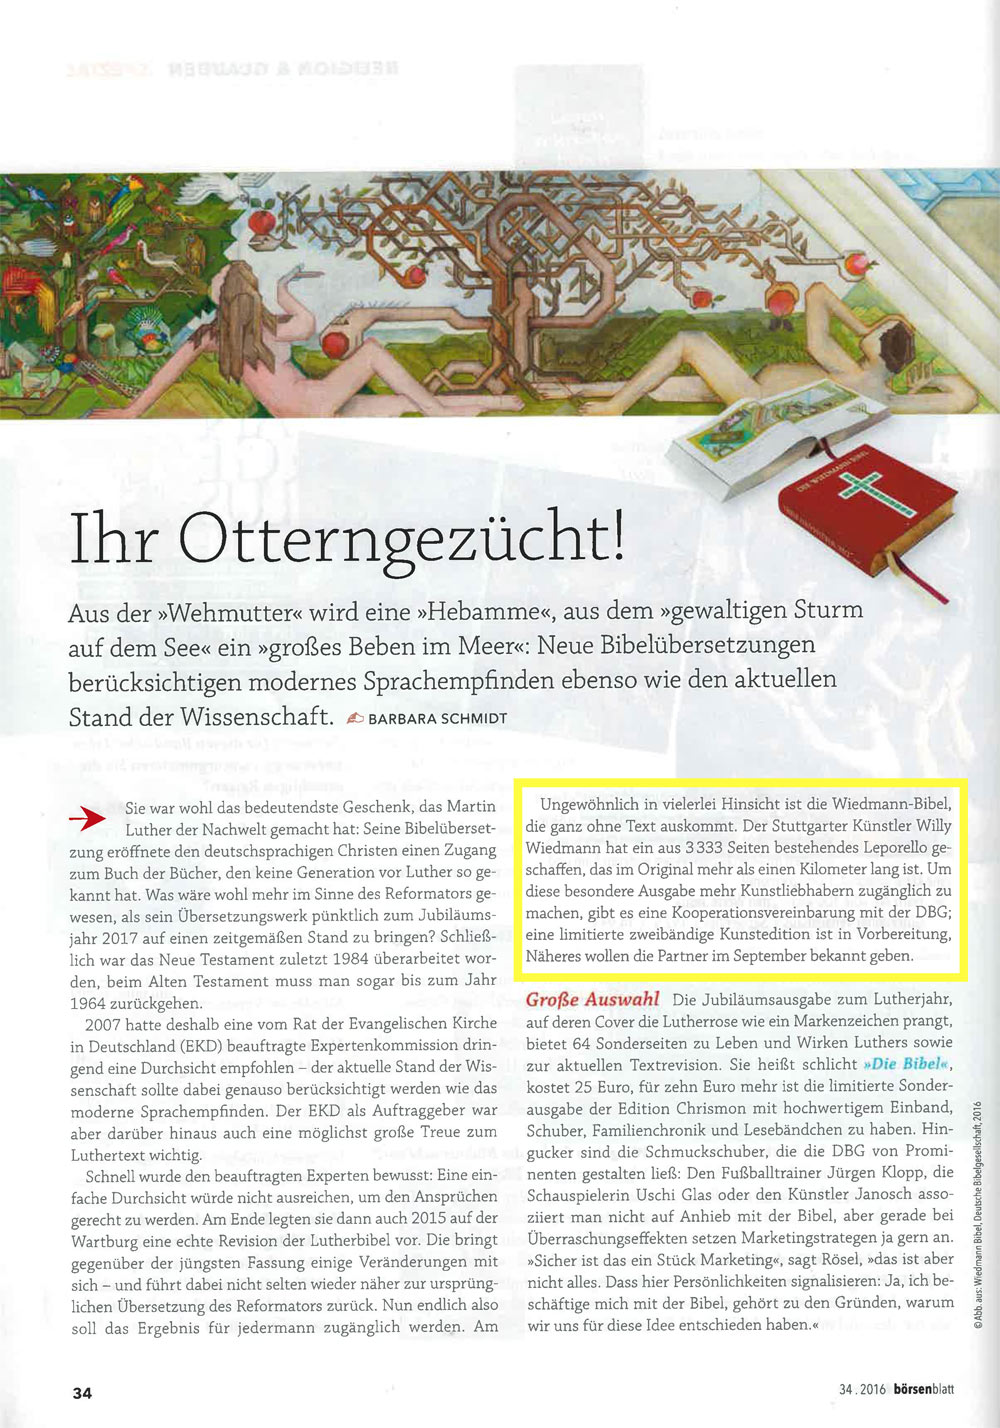 Source: Börsenblatt August 2016 - Religion & Glauben